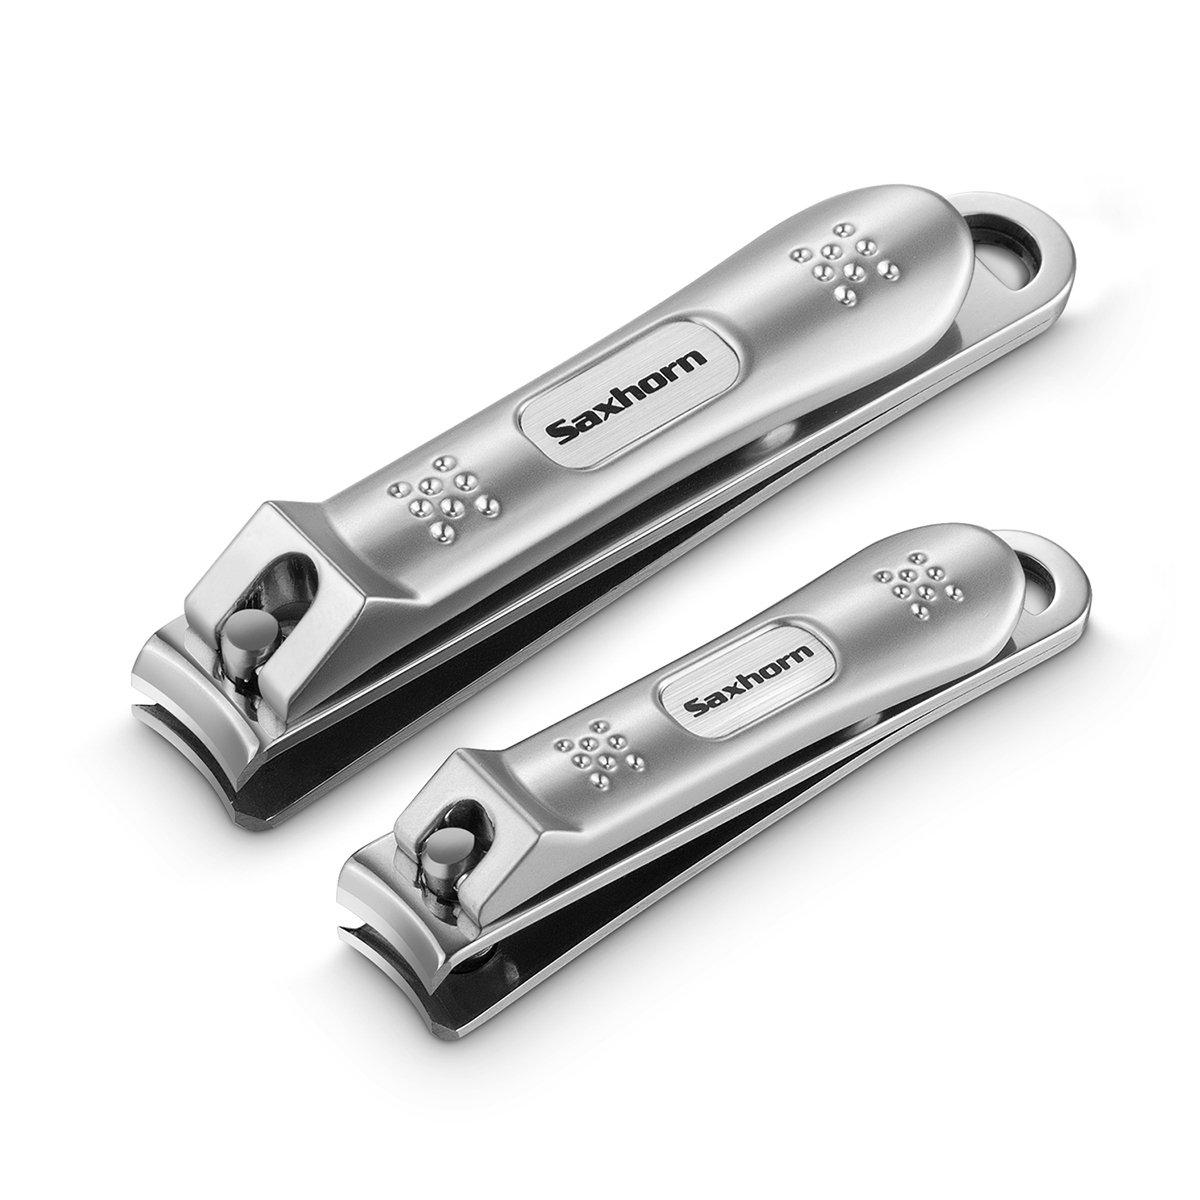 Nail Clippers, Saxhorn Nail Cutter and Trimmer for Fingernail and Toenail – Stainless Steel